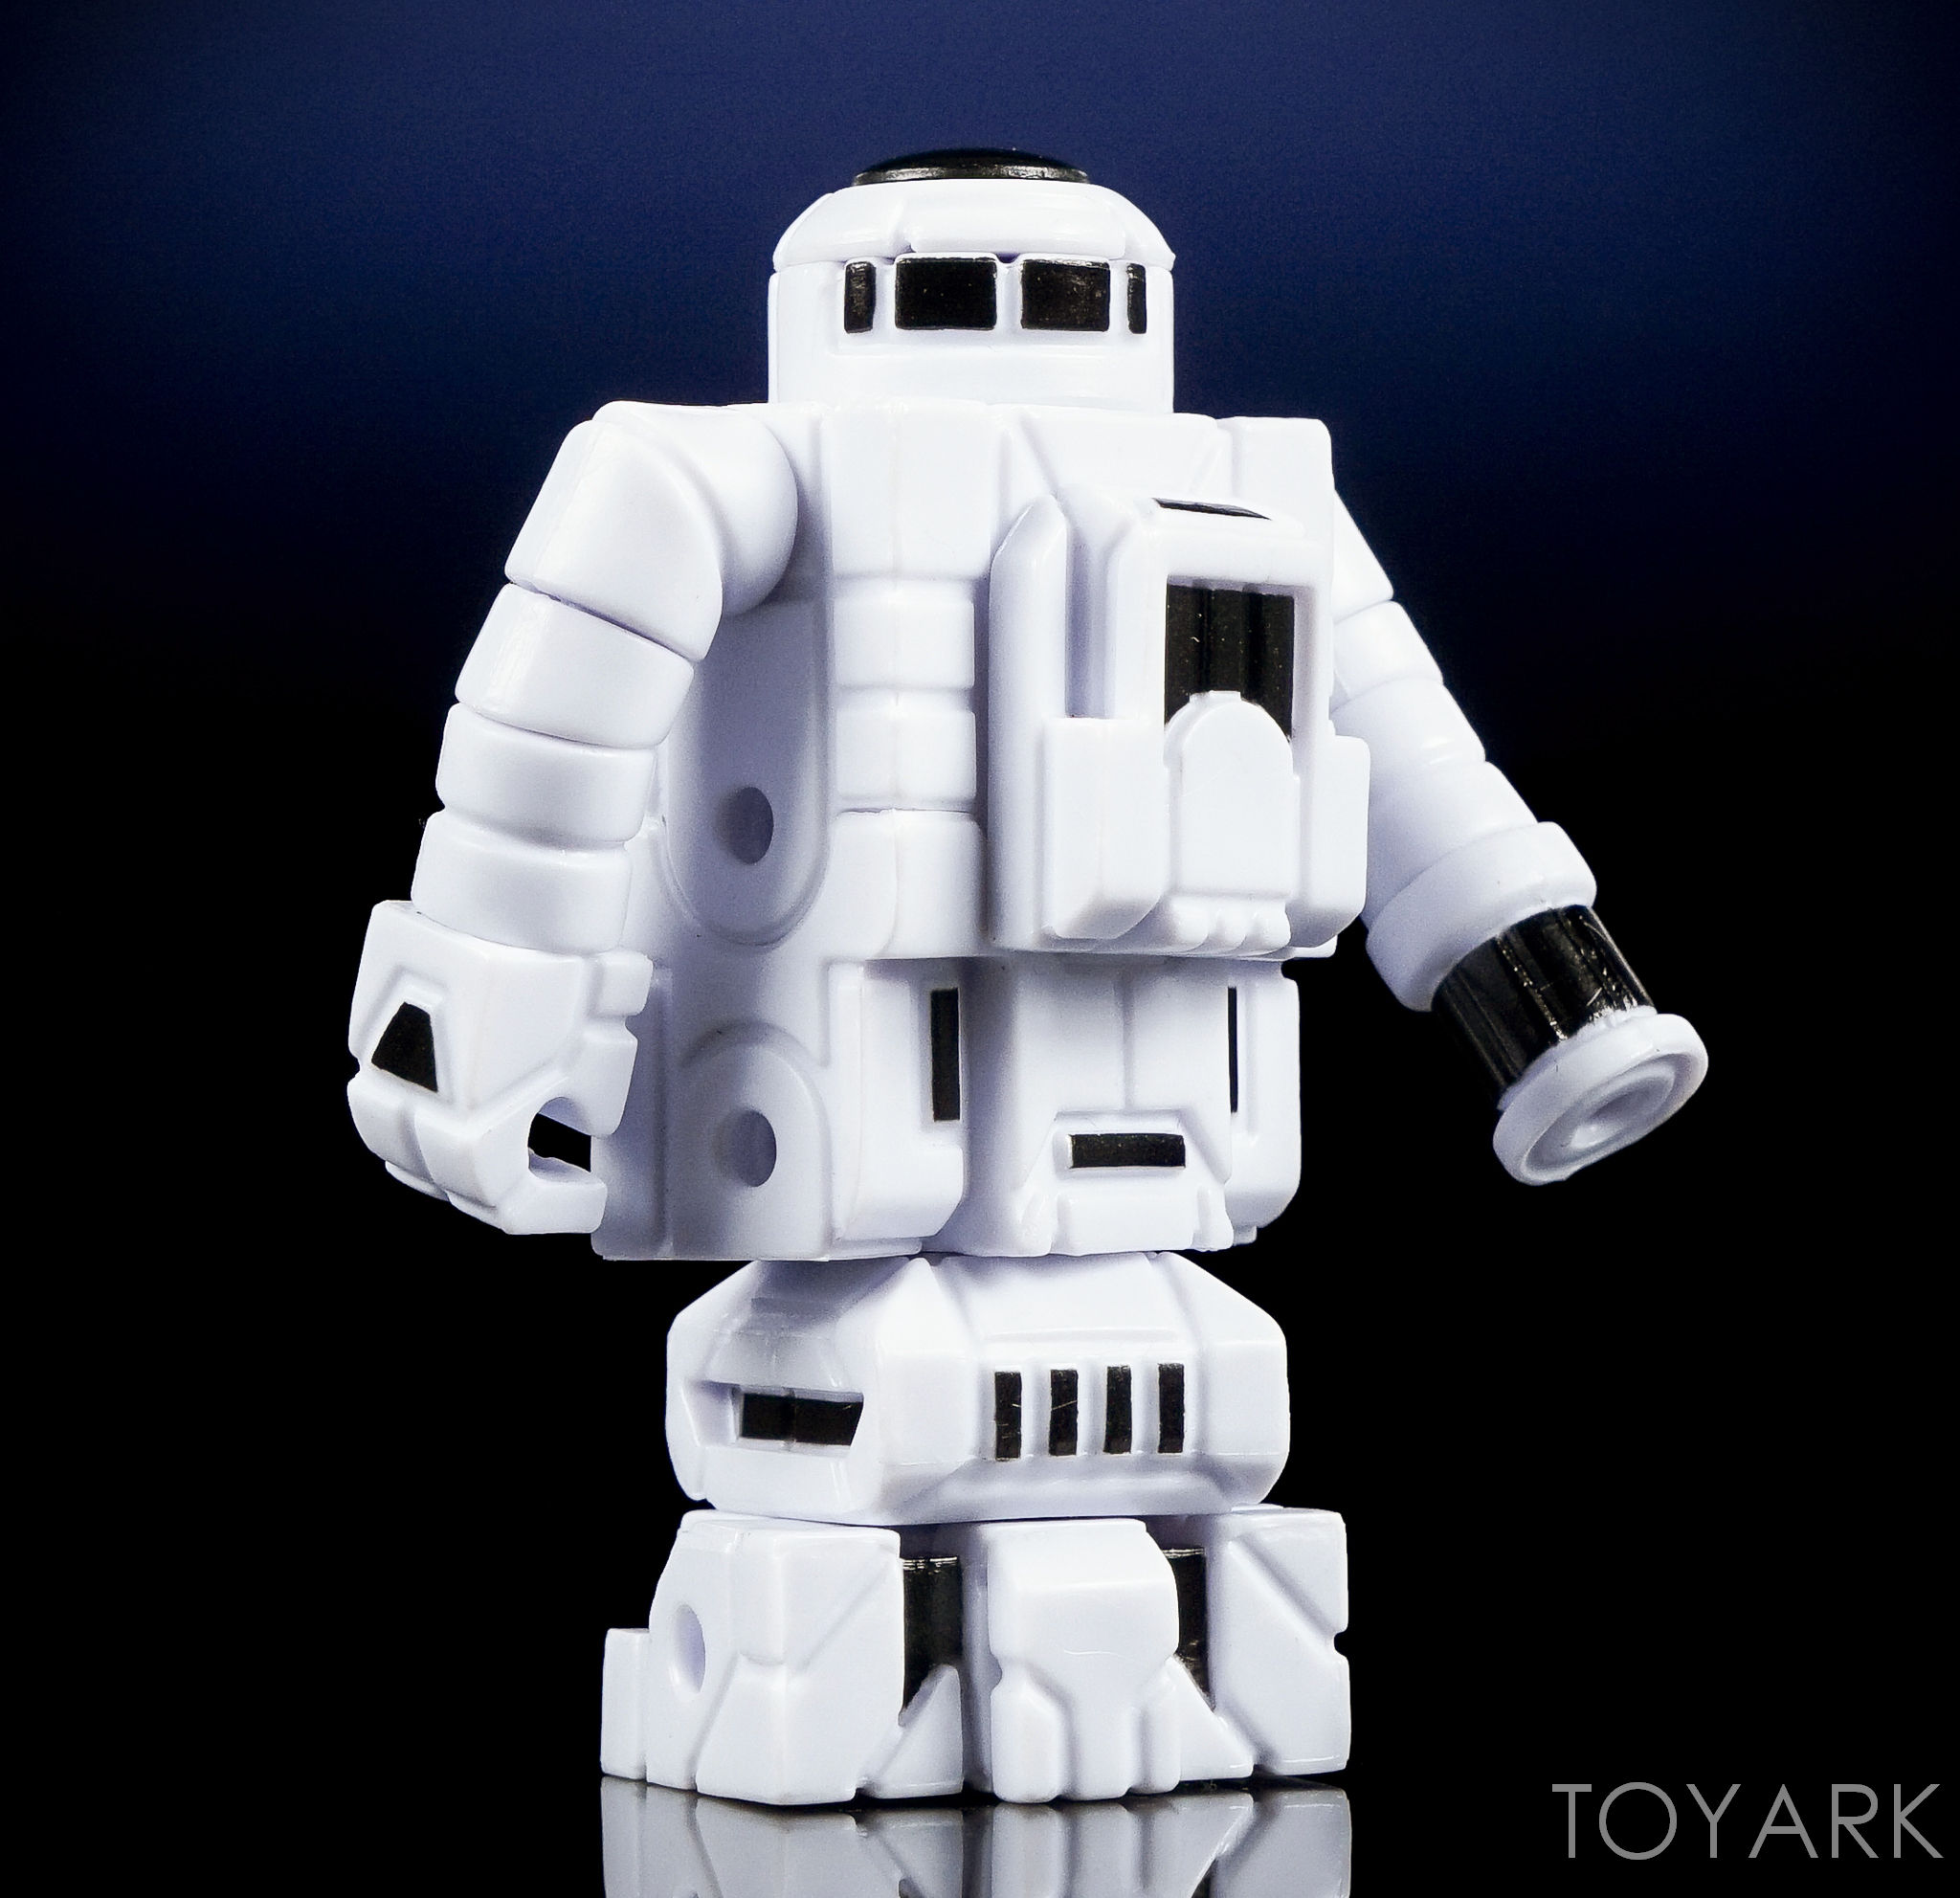 http://news.toyark.com/wp-content/uploads/sites/4/2016/10/Toyfinity-Roboforce-and-Zeroids-031.jpg